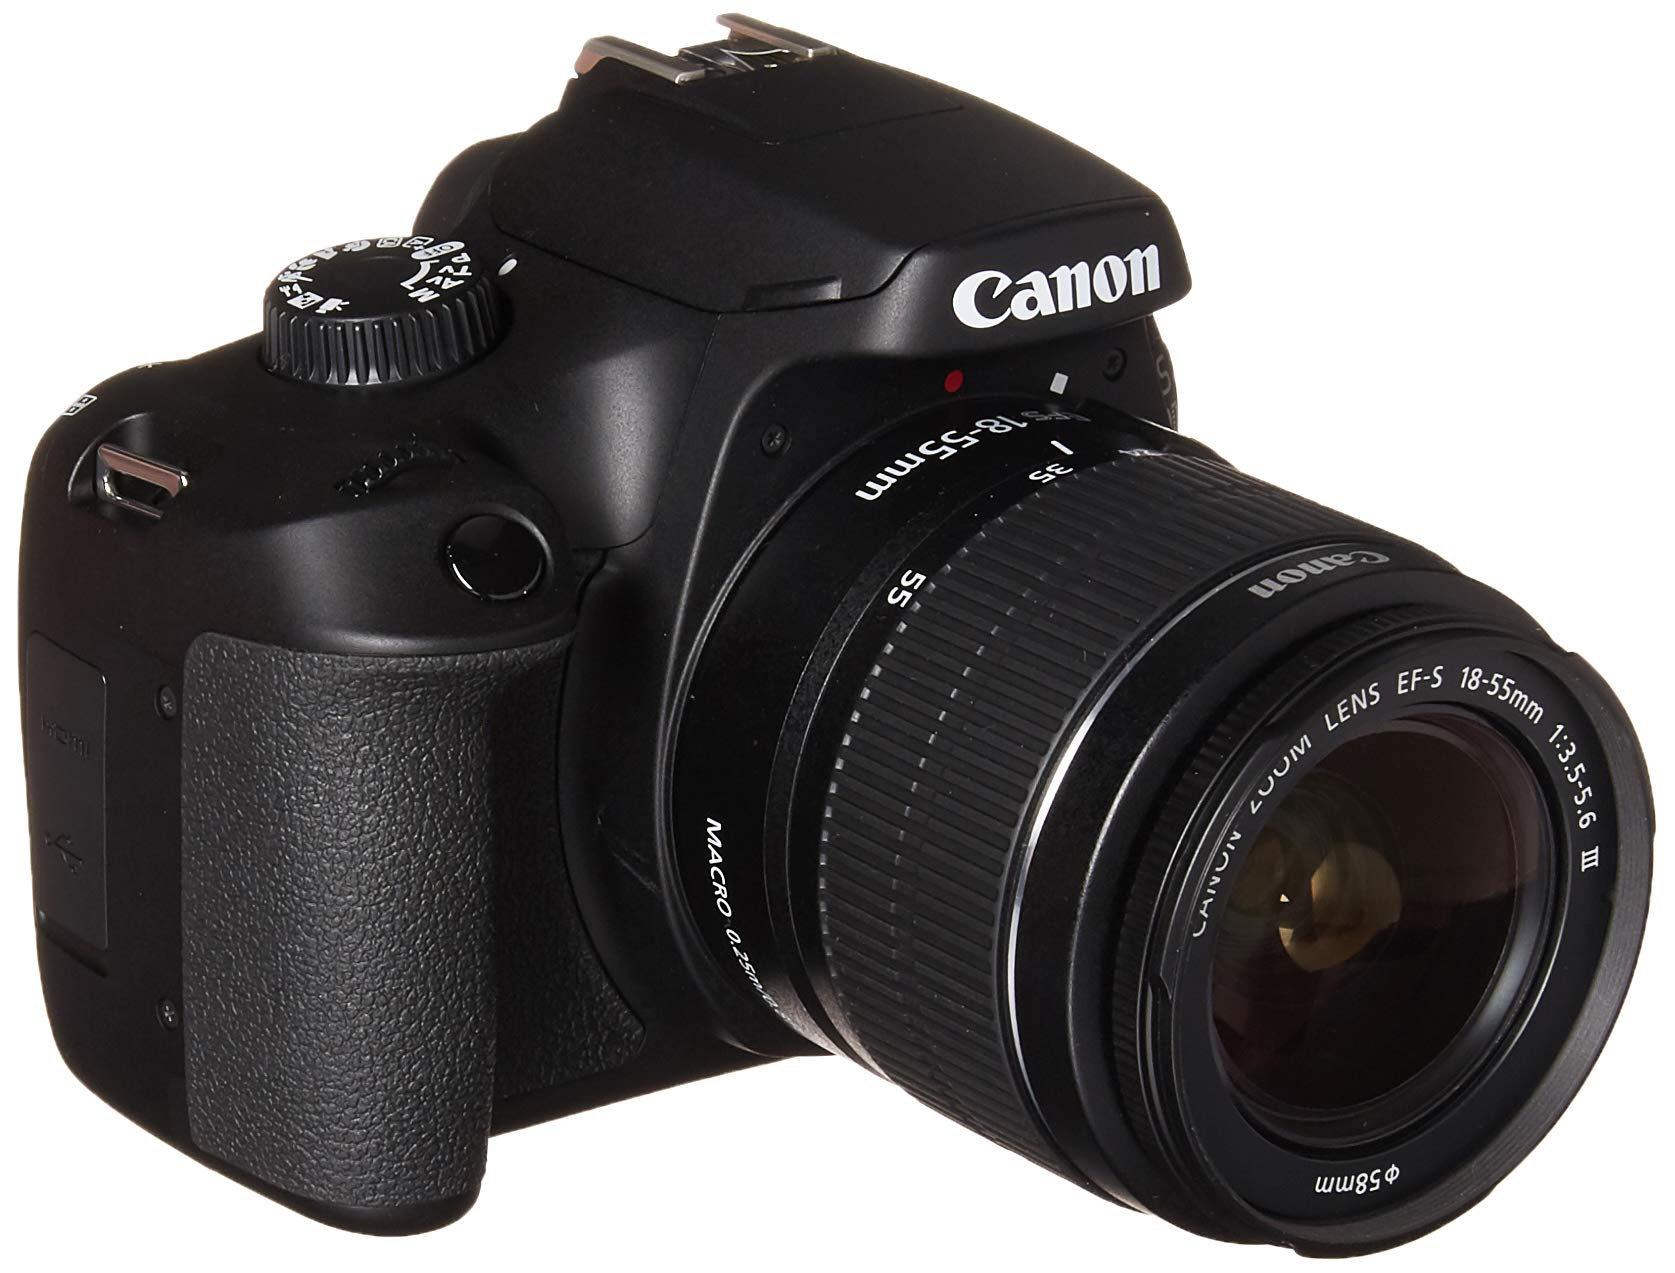 Canon EOS 4000D DSLR Camera EF-S 18-55 mm f/3.5-5.6 III Lens International Model by Canon